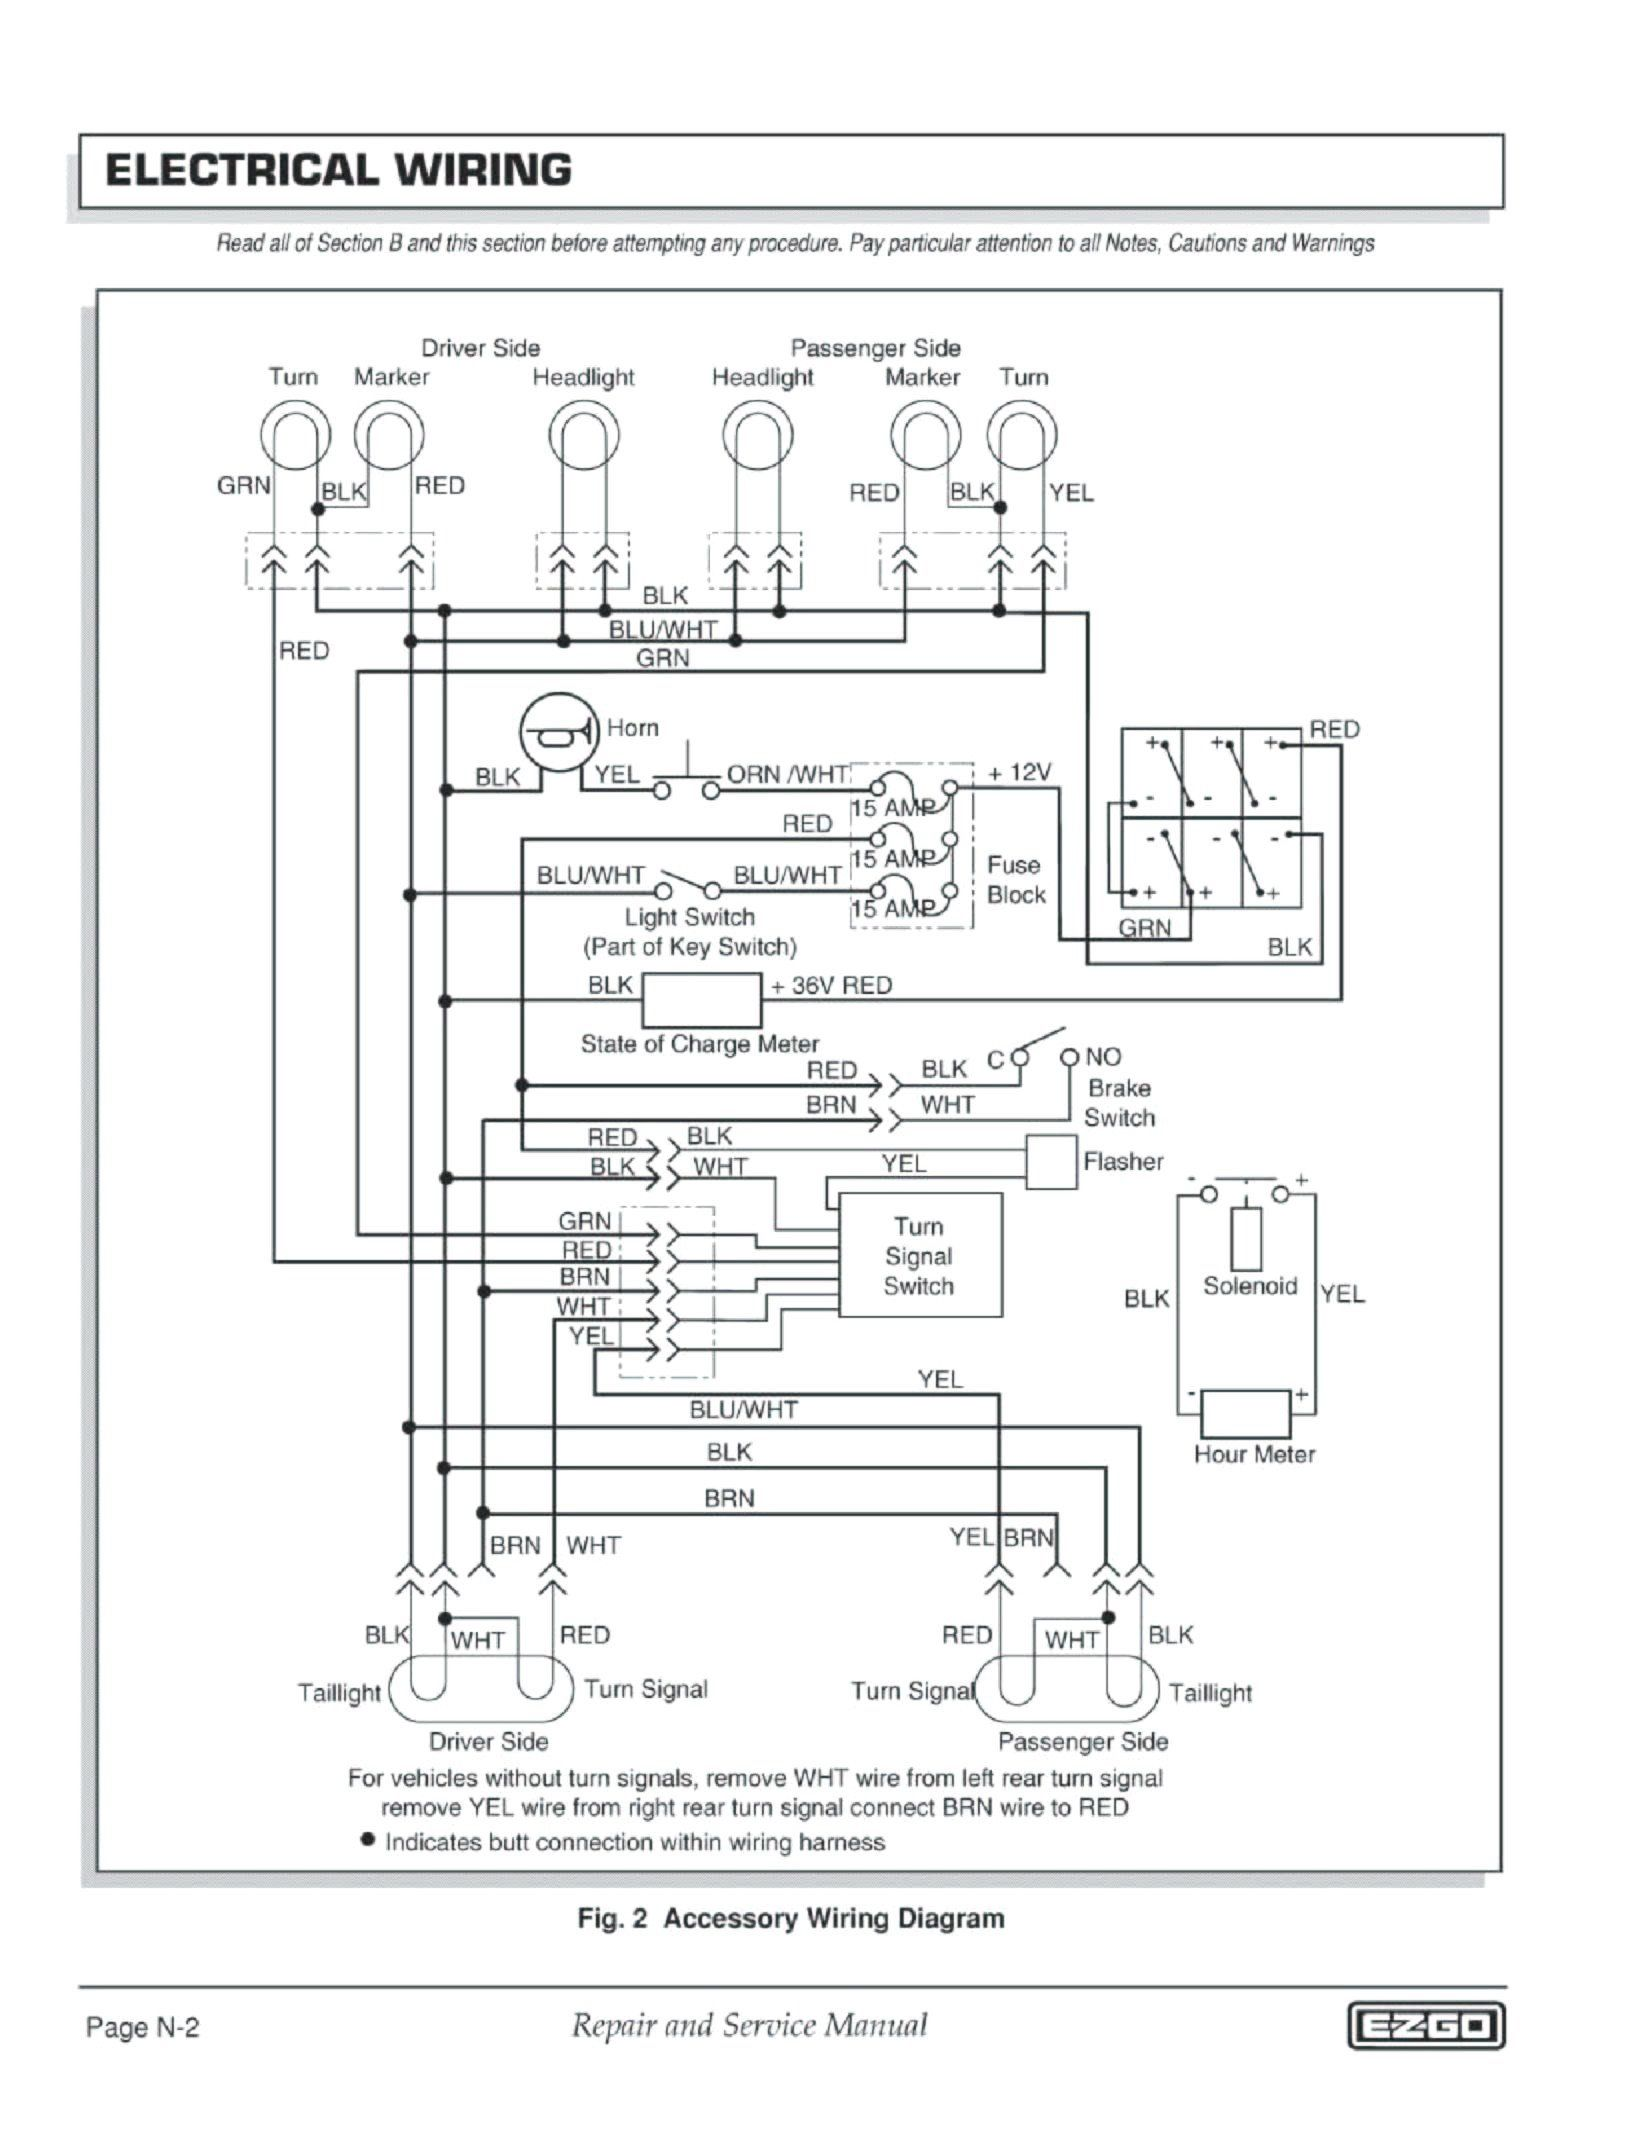 123 golight wiring diagram | acousticguitarguide in excellent golight  wiring diagram - 9965